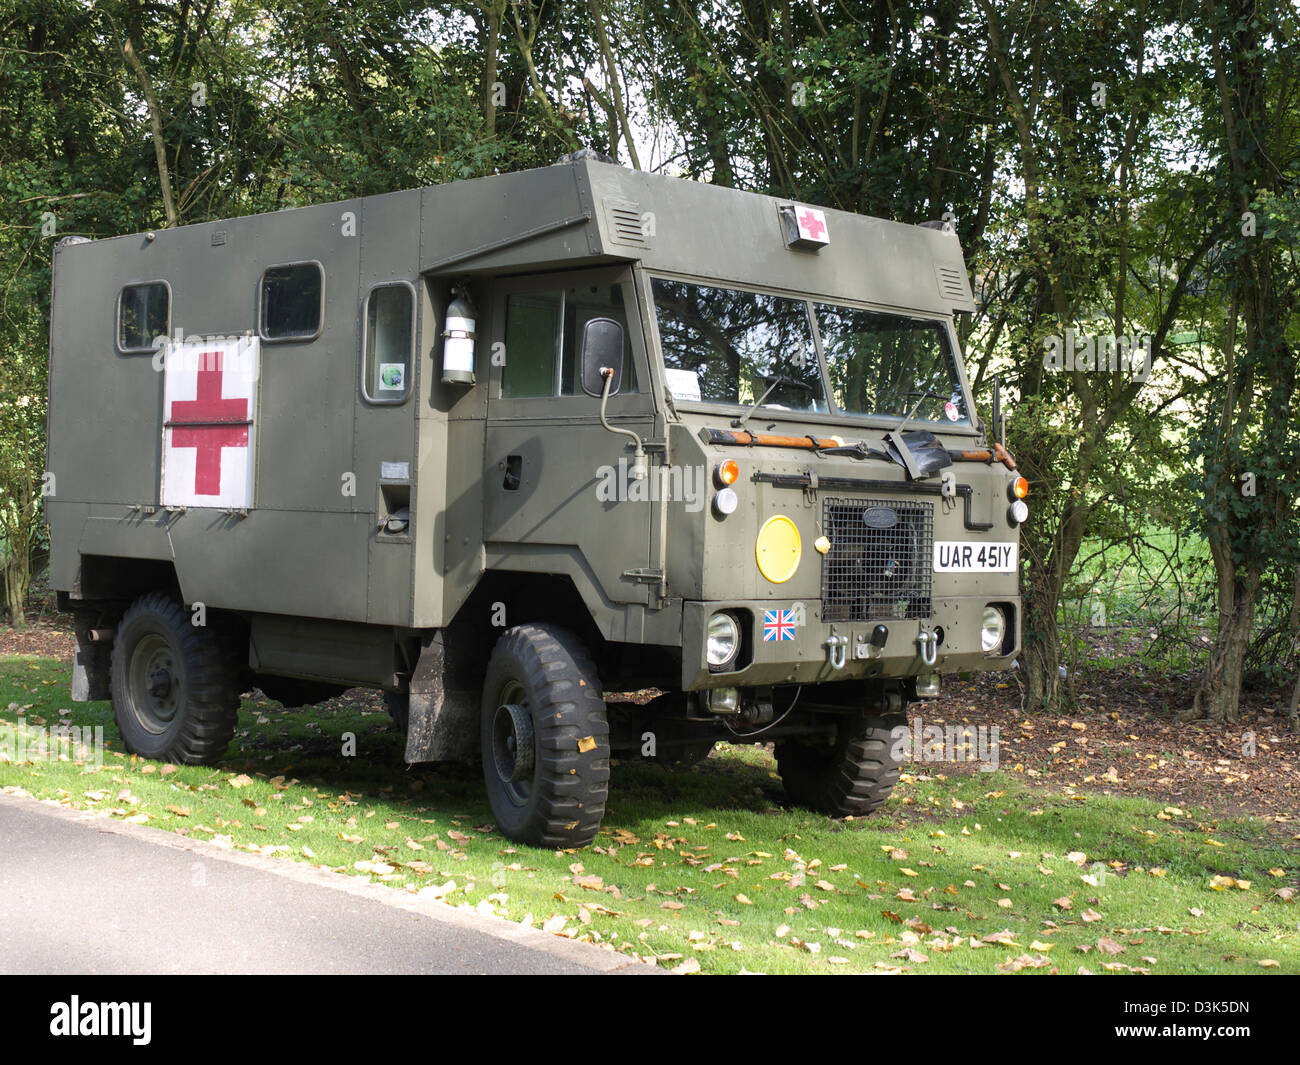 Vintage military landrover ambulance at holme 1940 s weekend stock image